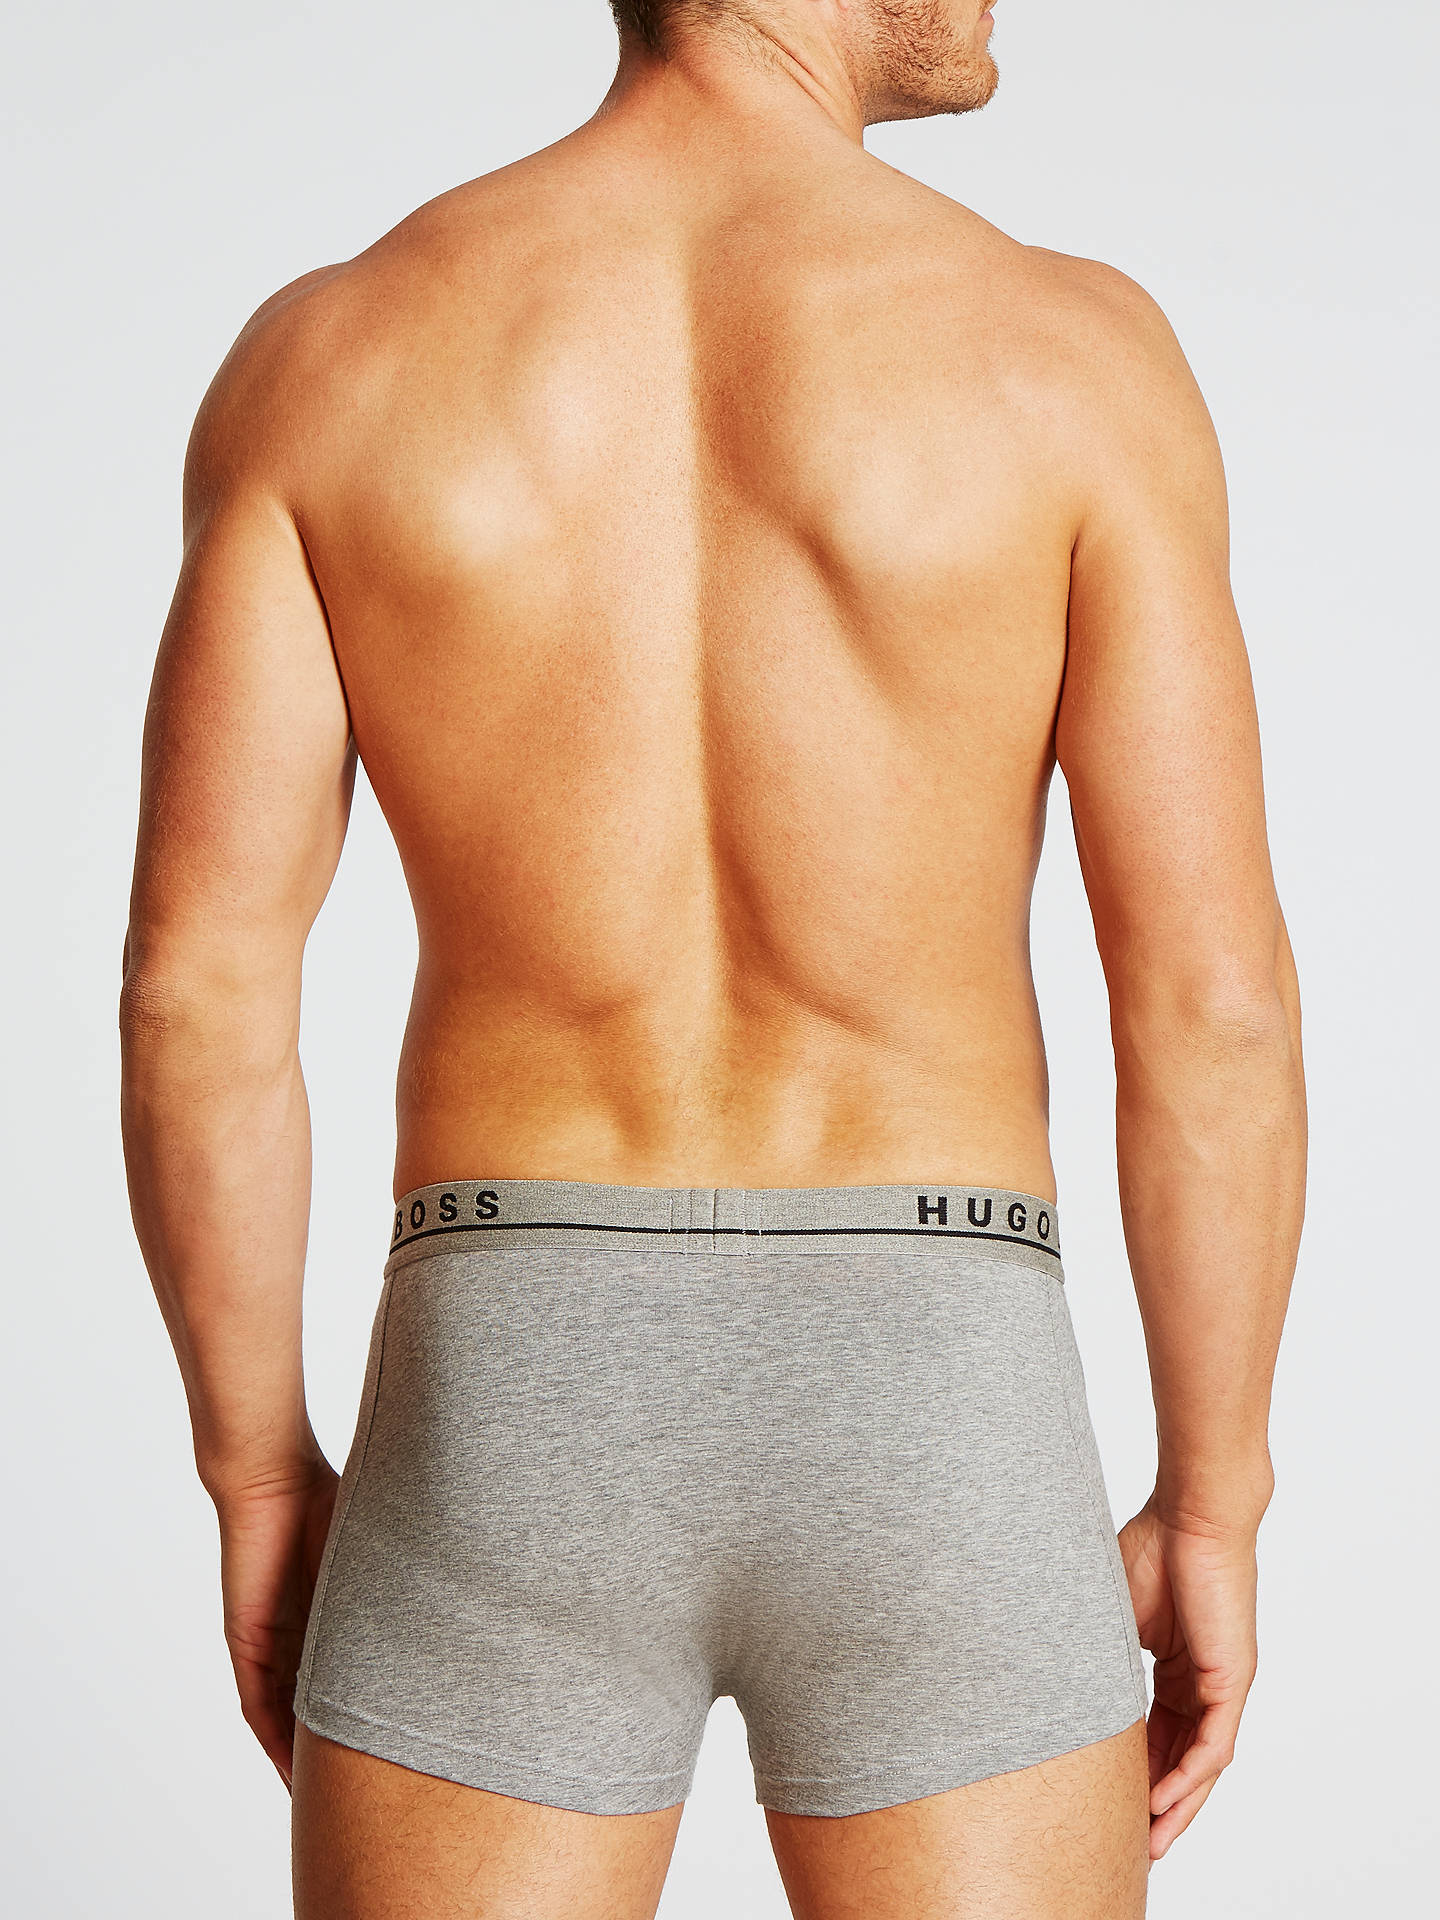 BuyBOSS Stretch Cotton Trunks, Pack of 3, Grey/White/Black, L Online at johnlewis.com